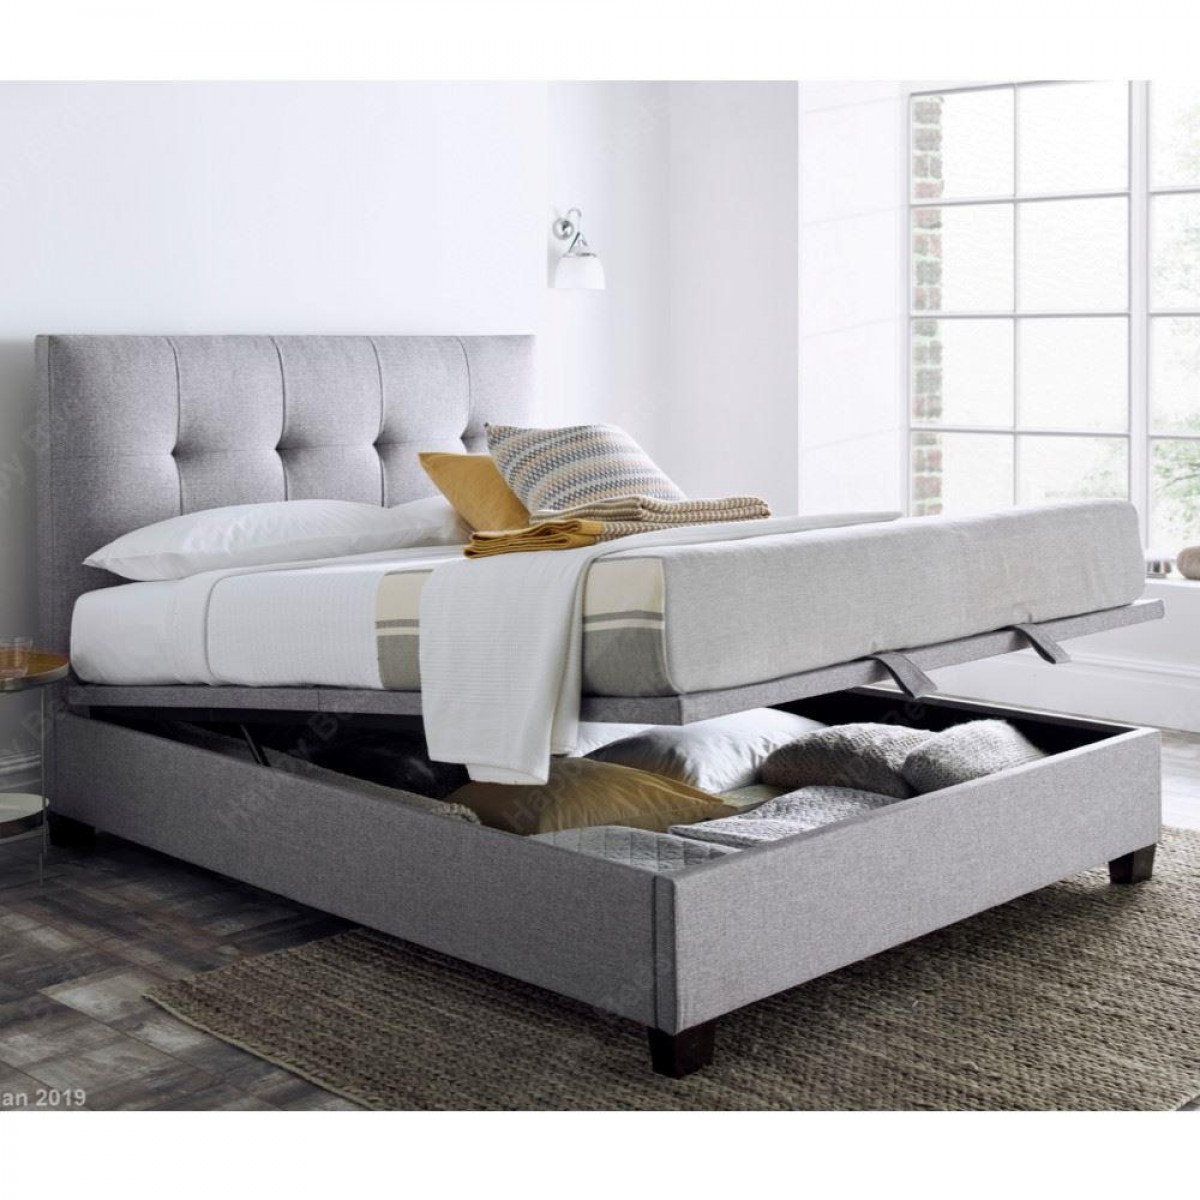 Walkworth Light Grey Fabric Ottoman Storage Bed